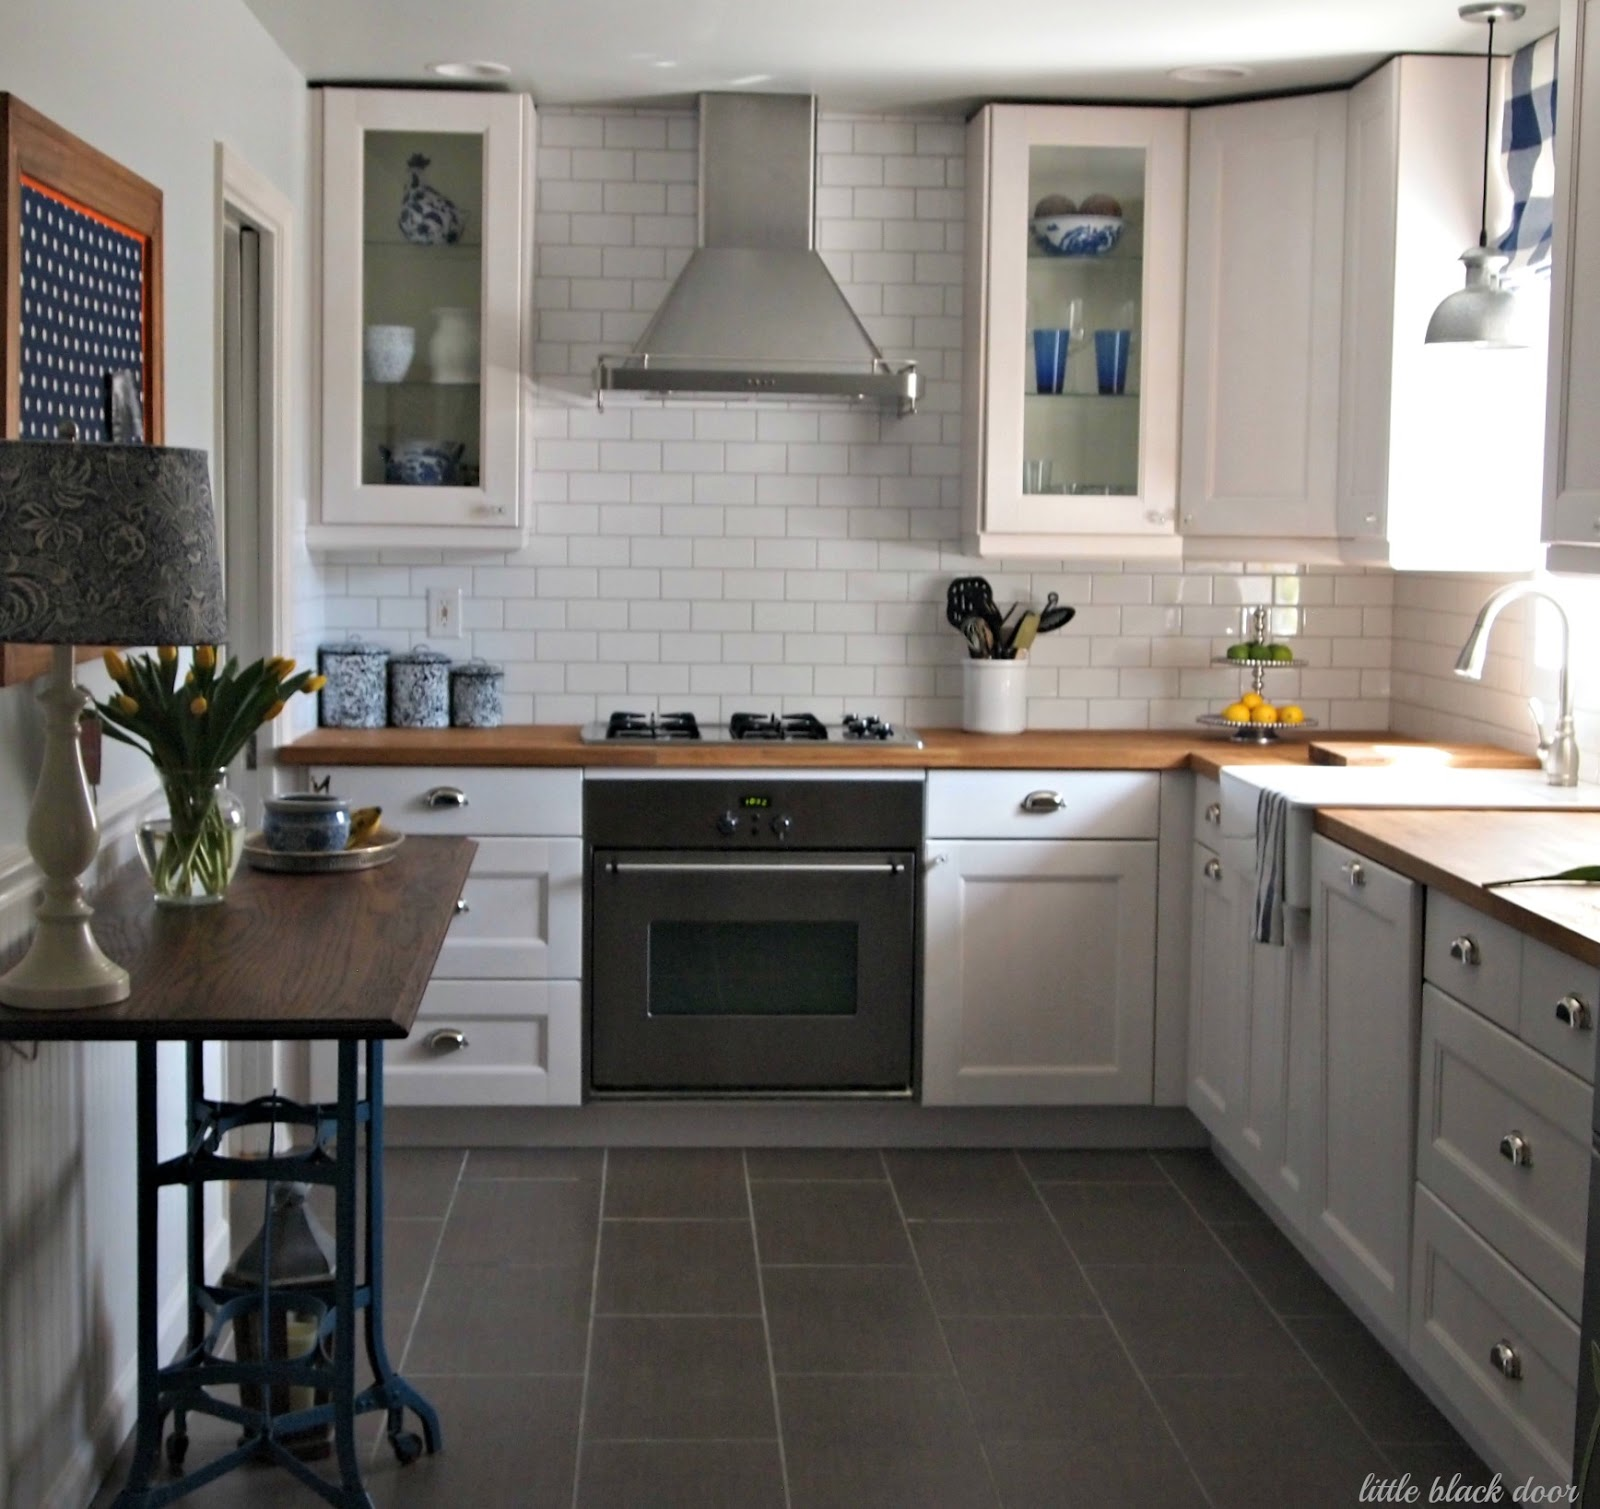 Farmhouse Kitchen Cabinets: Little Black Door: Before And After: Farmhouse Kitchen